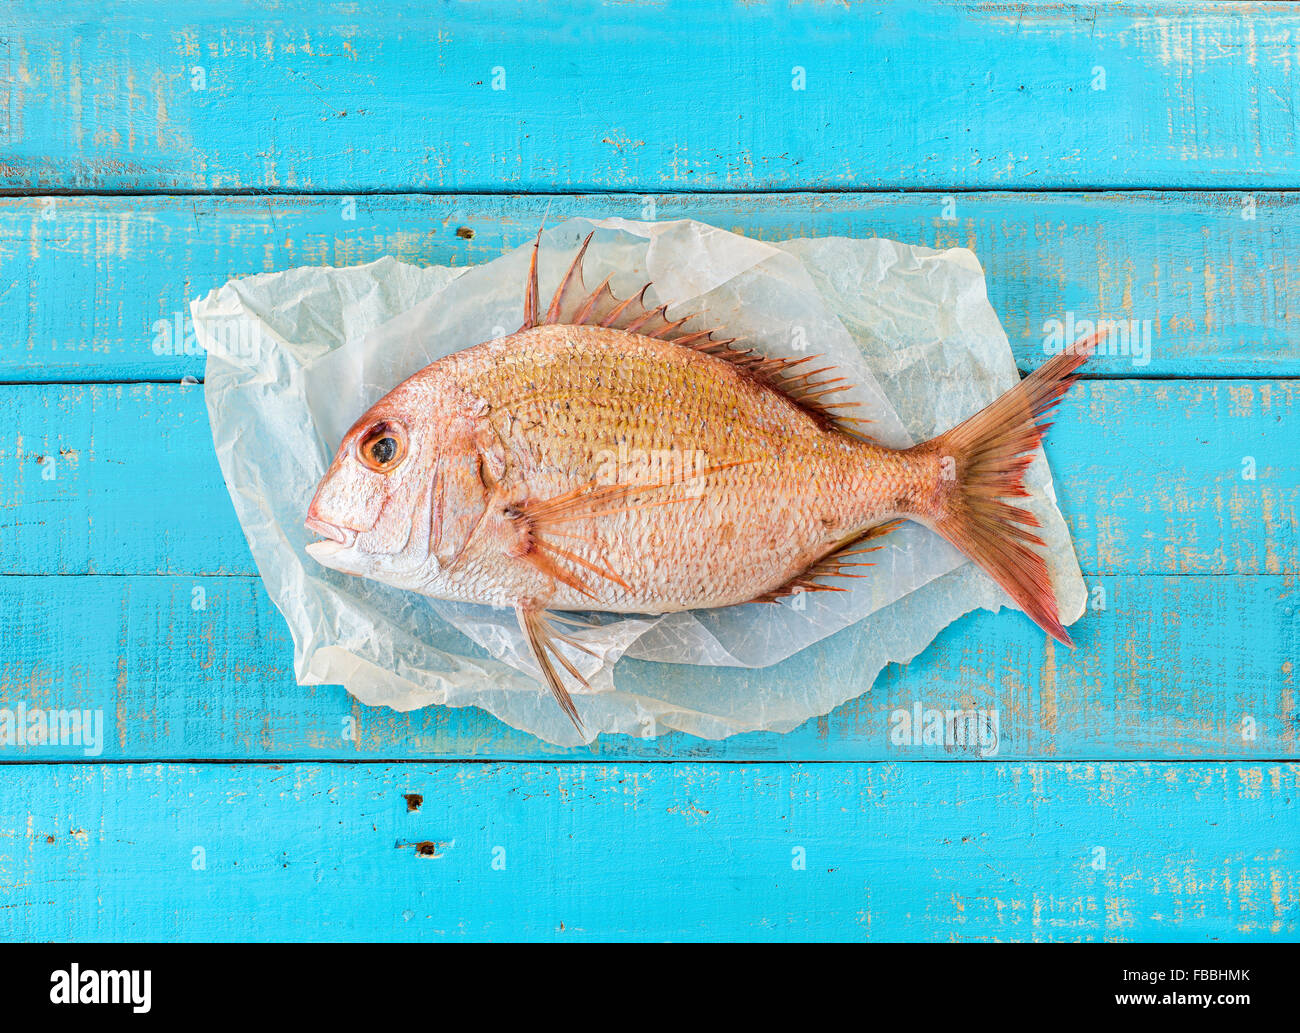 Porgy fish (Pagrus pagrus), also known along the Gulf Coast as white Snapper, on a mediterranean blue wooden table. Stock Photo